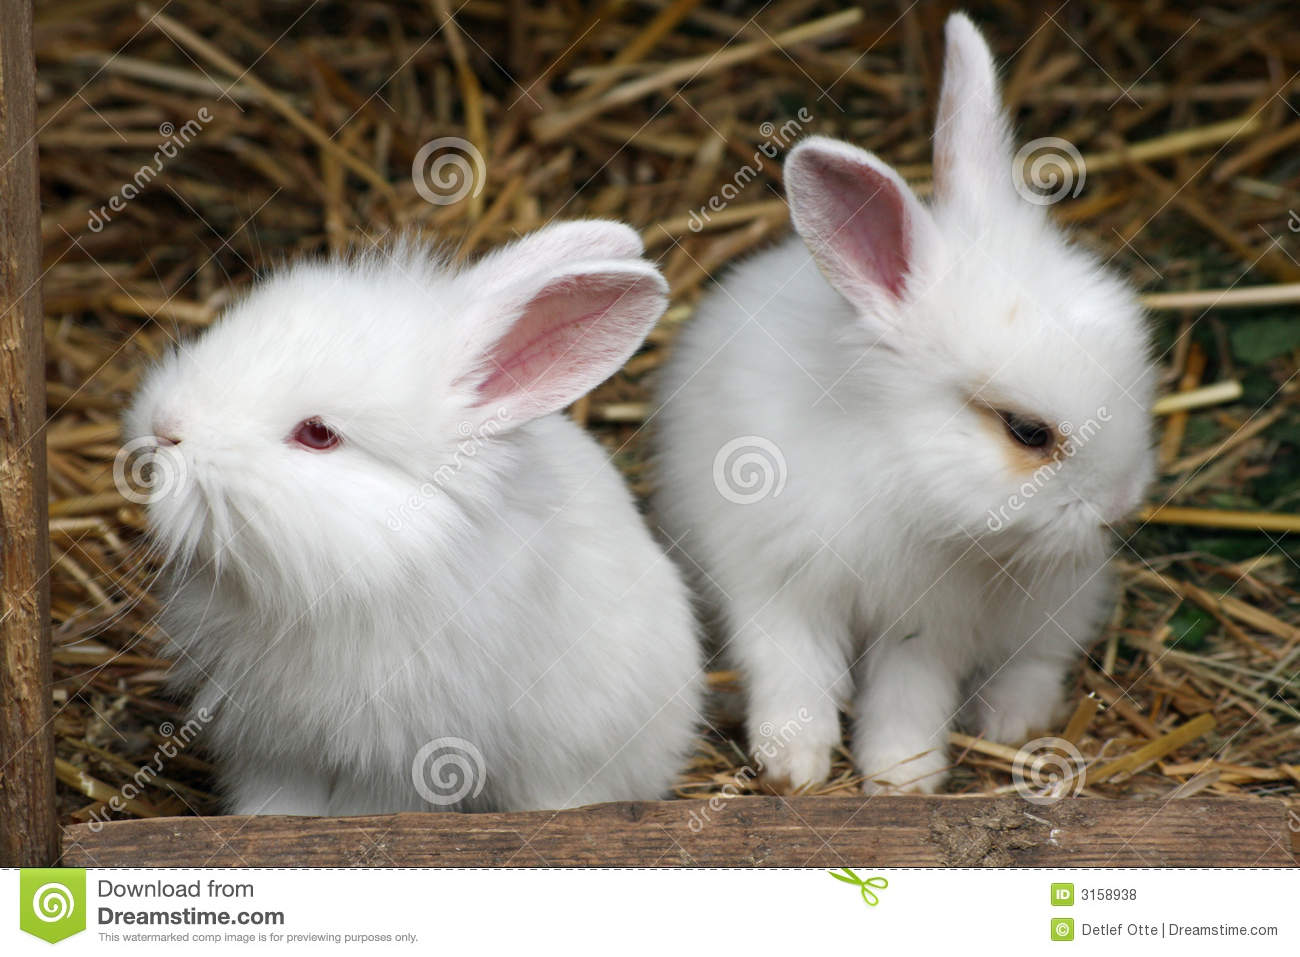 Baby Rabbit Royalty Free Stock Photos - Image: 3158938